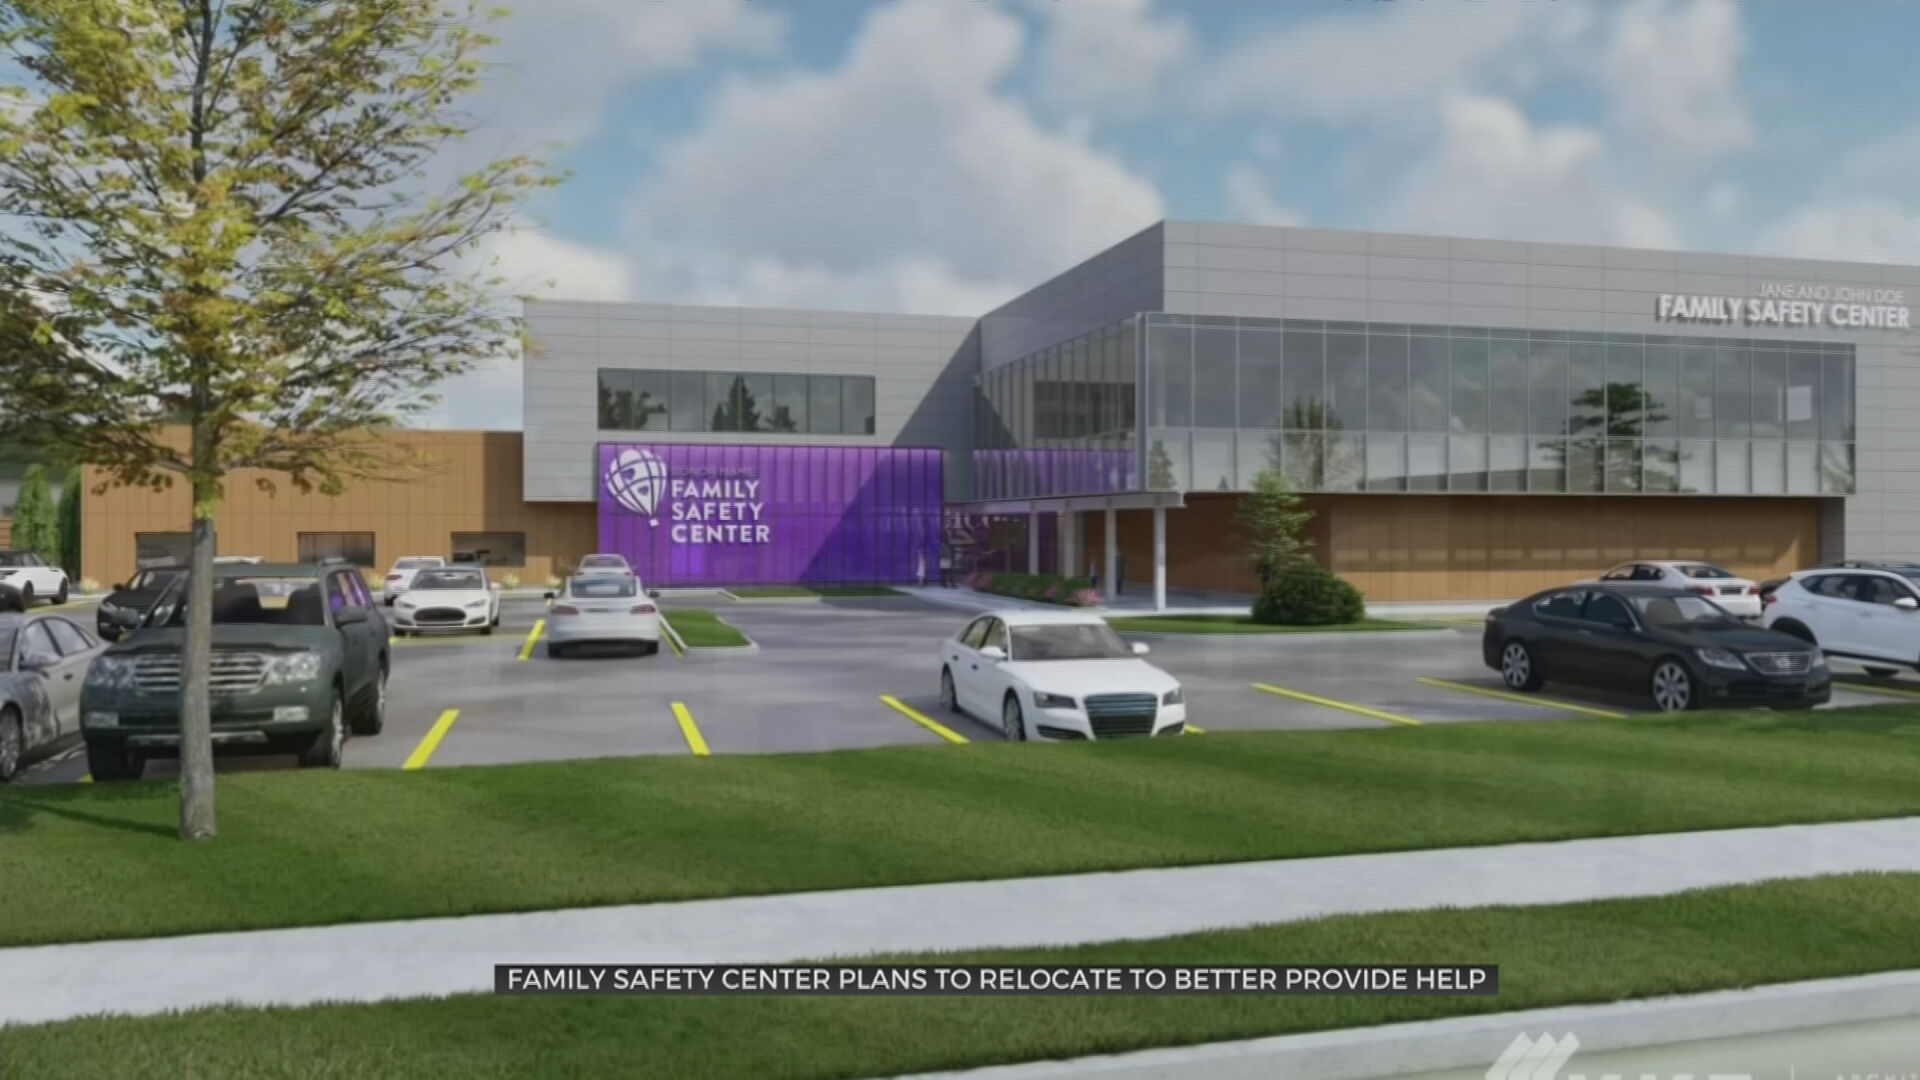 Relocation Will Allow Tulsa Family Safety Center To Better Provide Help